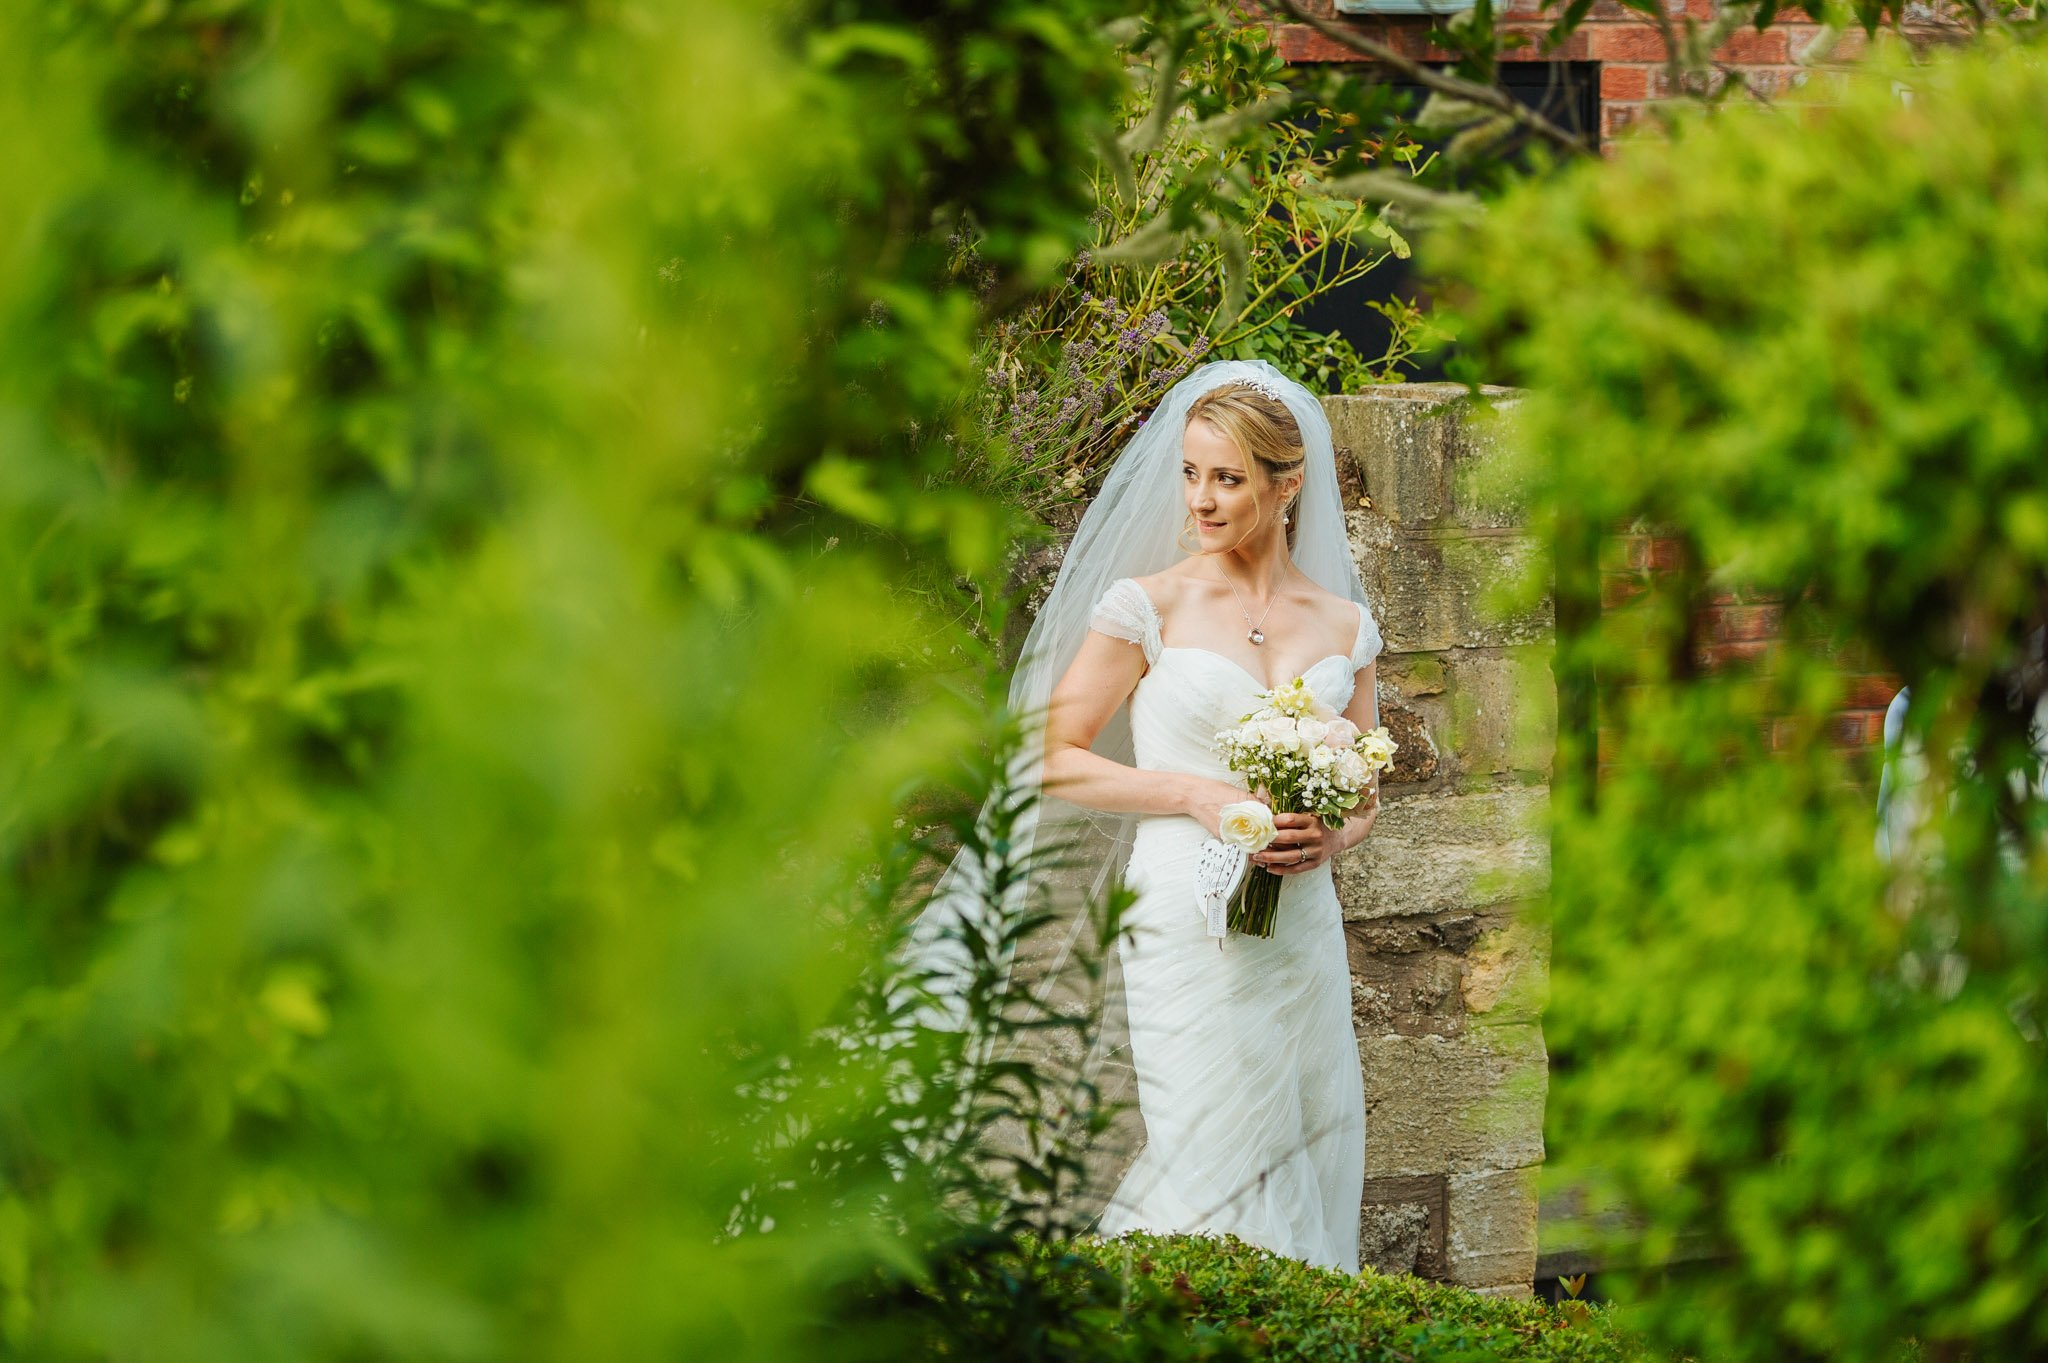 Georgina + Mike - Wedding photography in Malvern, Worcestershire 72